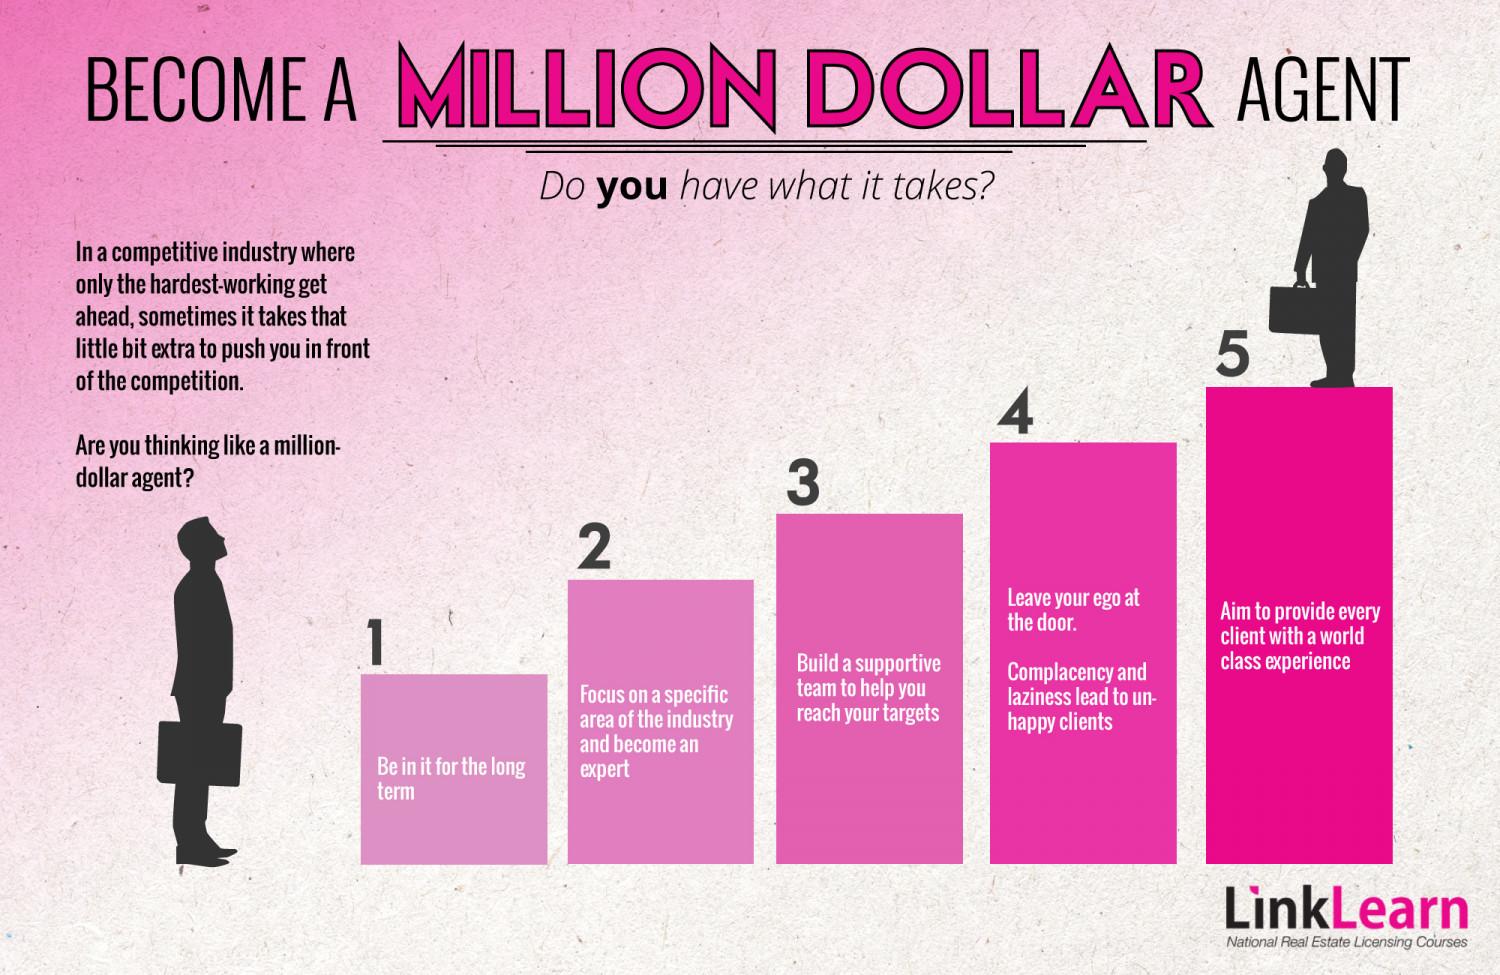 Become a Million Dollar Agent Infographic